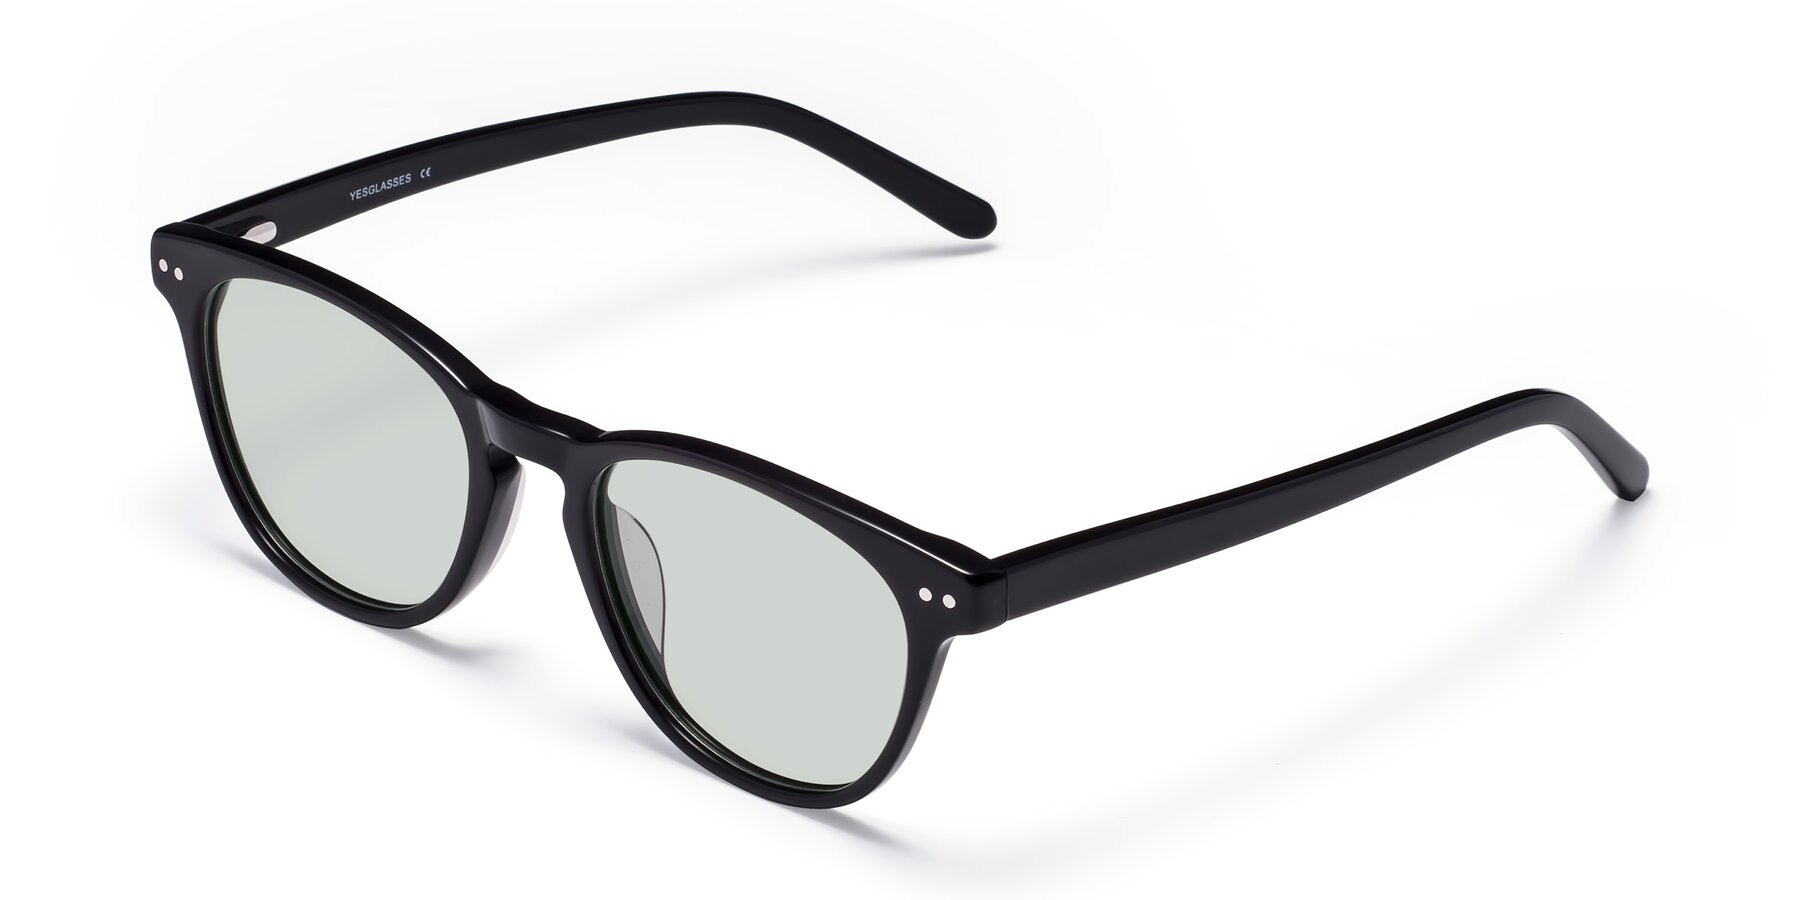 Angle of Blaze in Black with Light Green Tinted Lenses